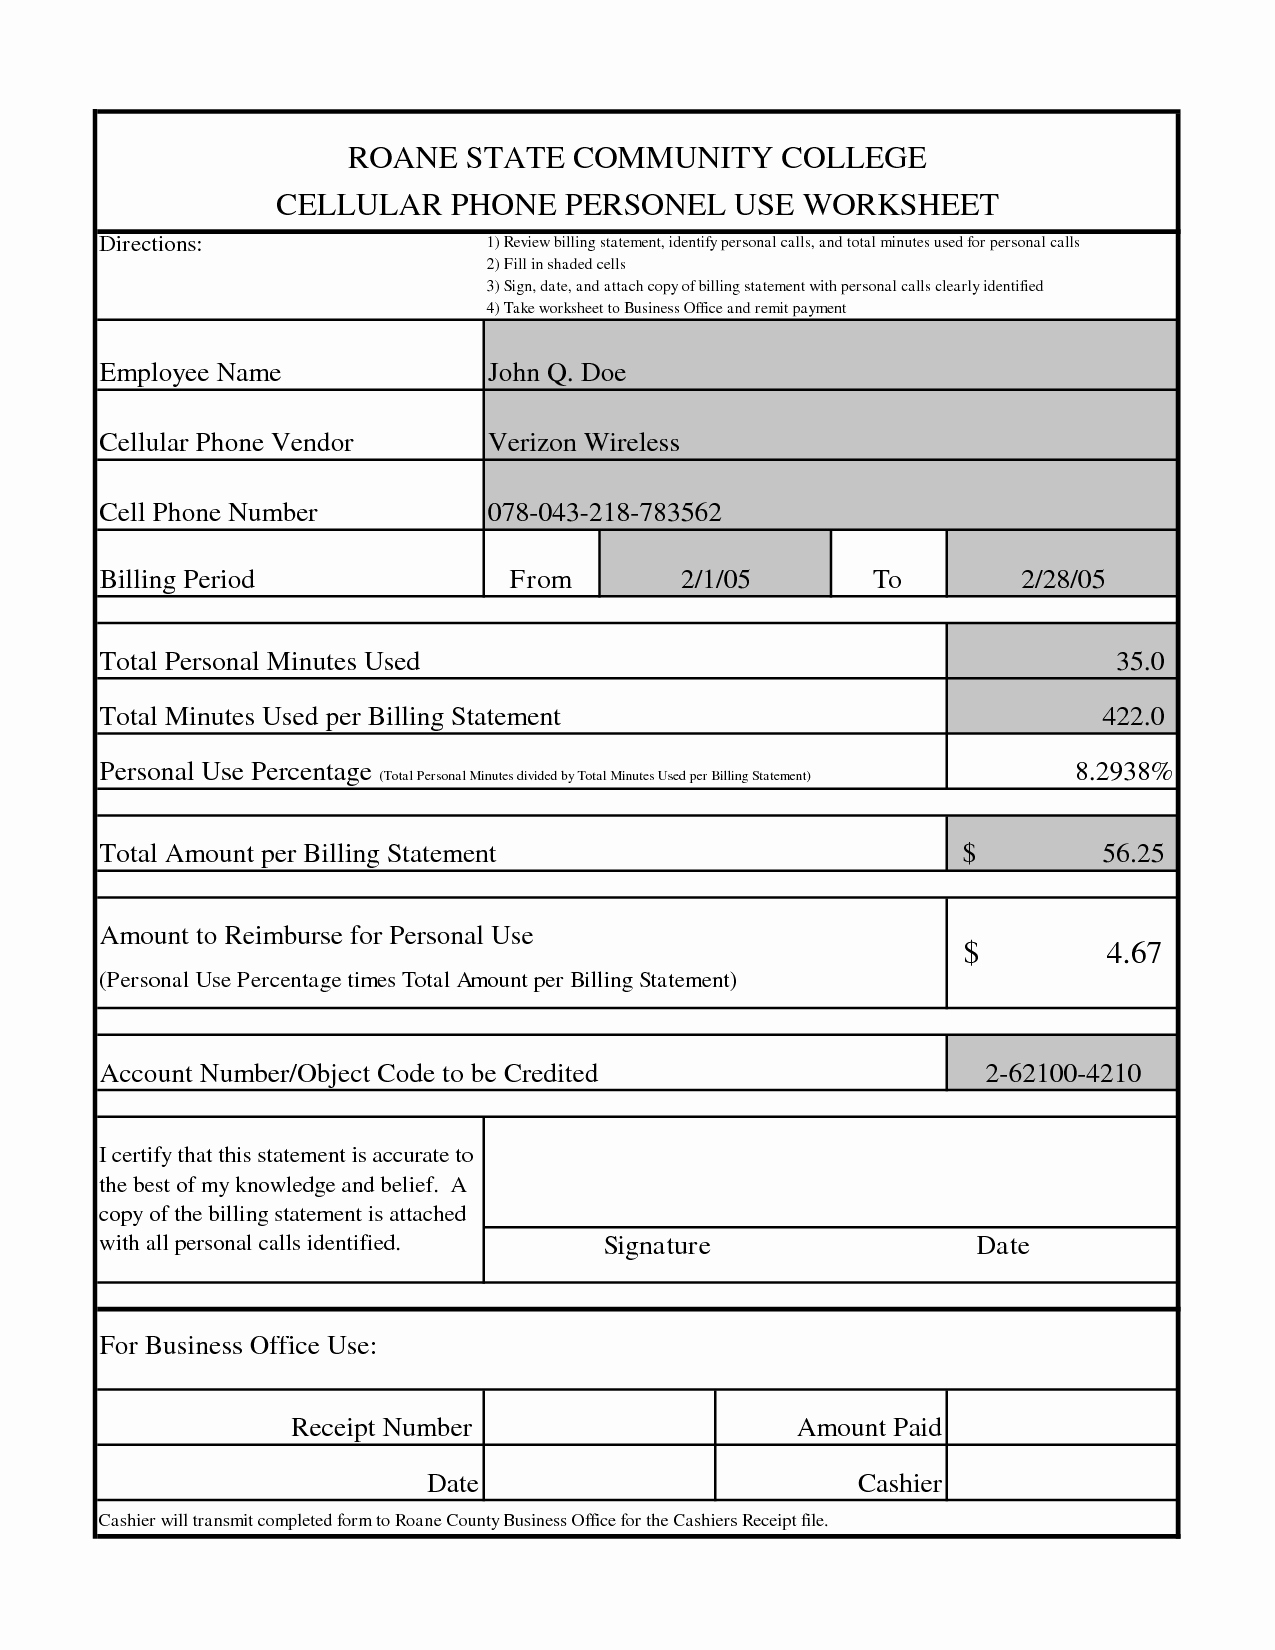 Credit Card Statement Worksheet